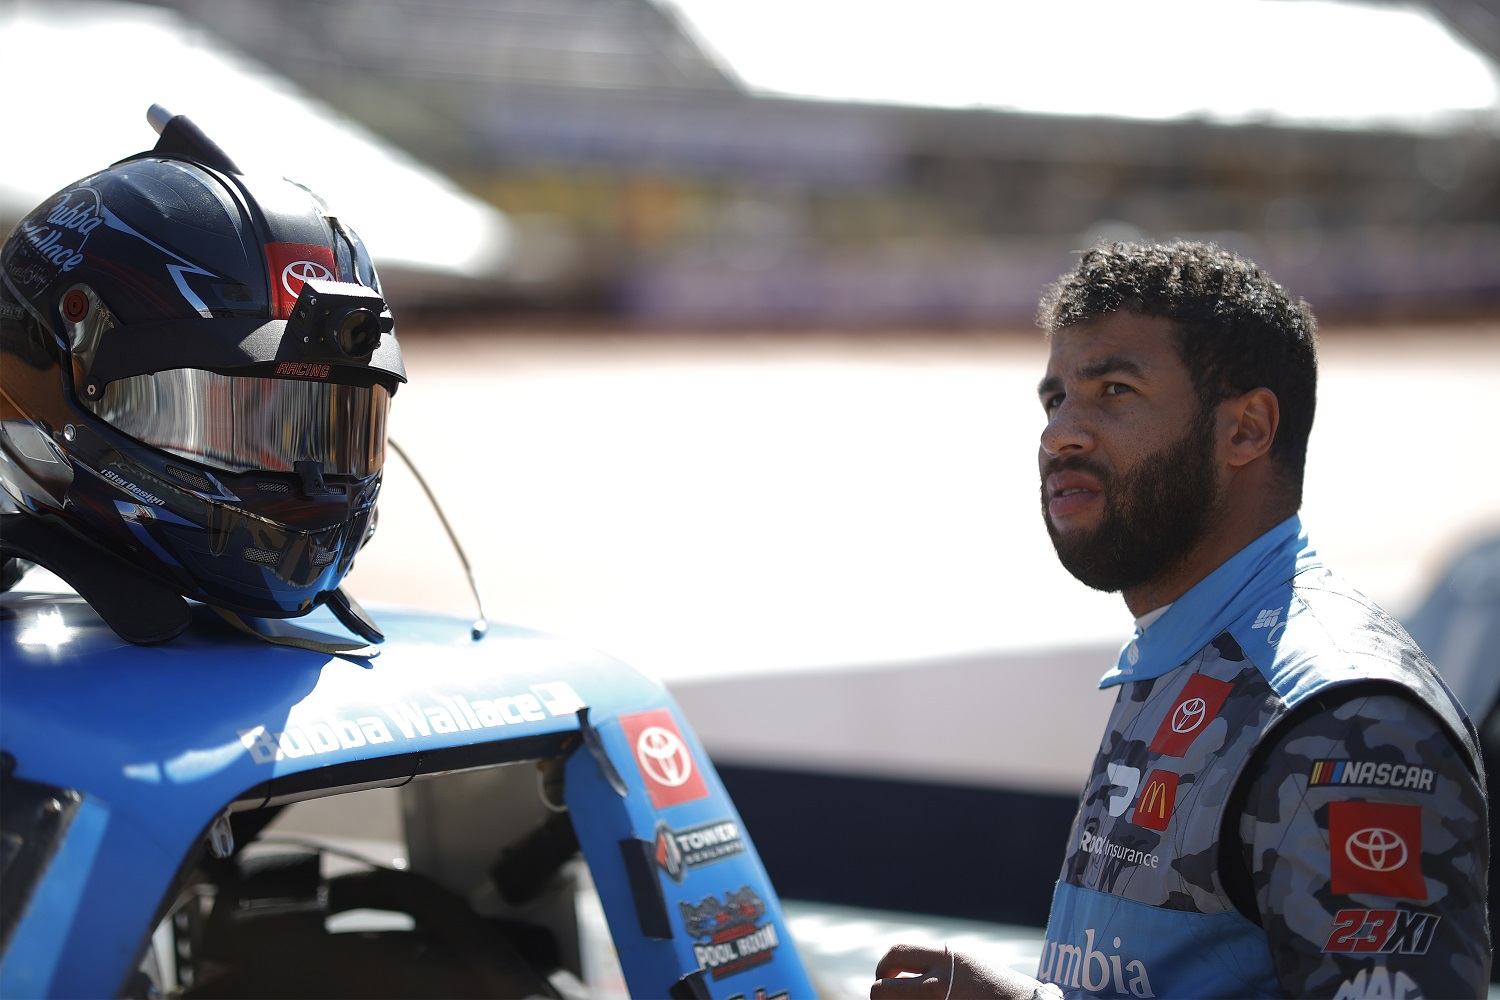 Bubba Wallace has not finished in the top 15 yet through seven races of the 2021 NASCAR Cup Series schedule with his new team, 23XI Racing, owned by Michael Jordan. | Chris Graythen/Getty Images